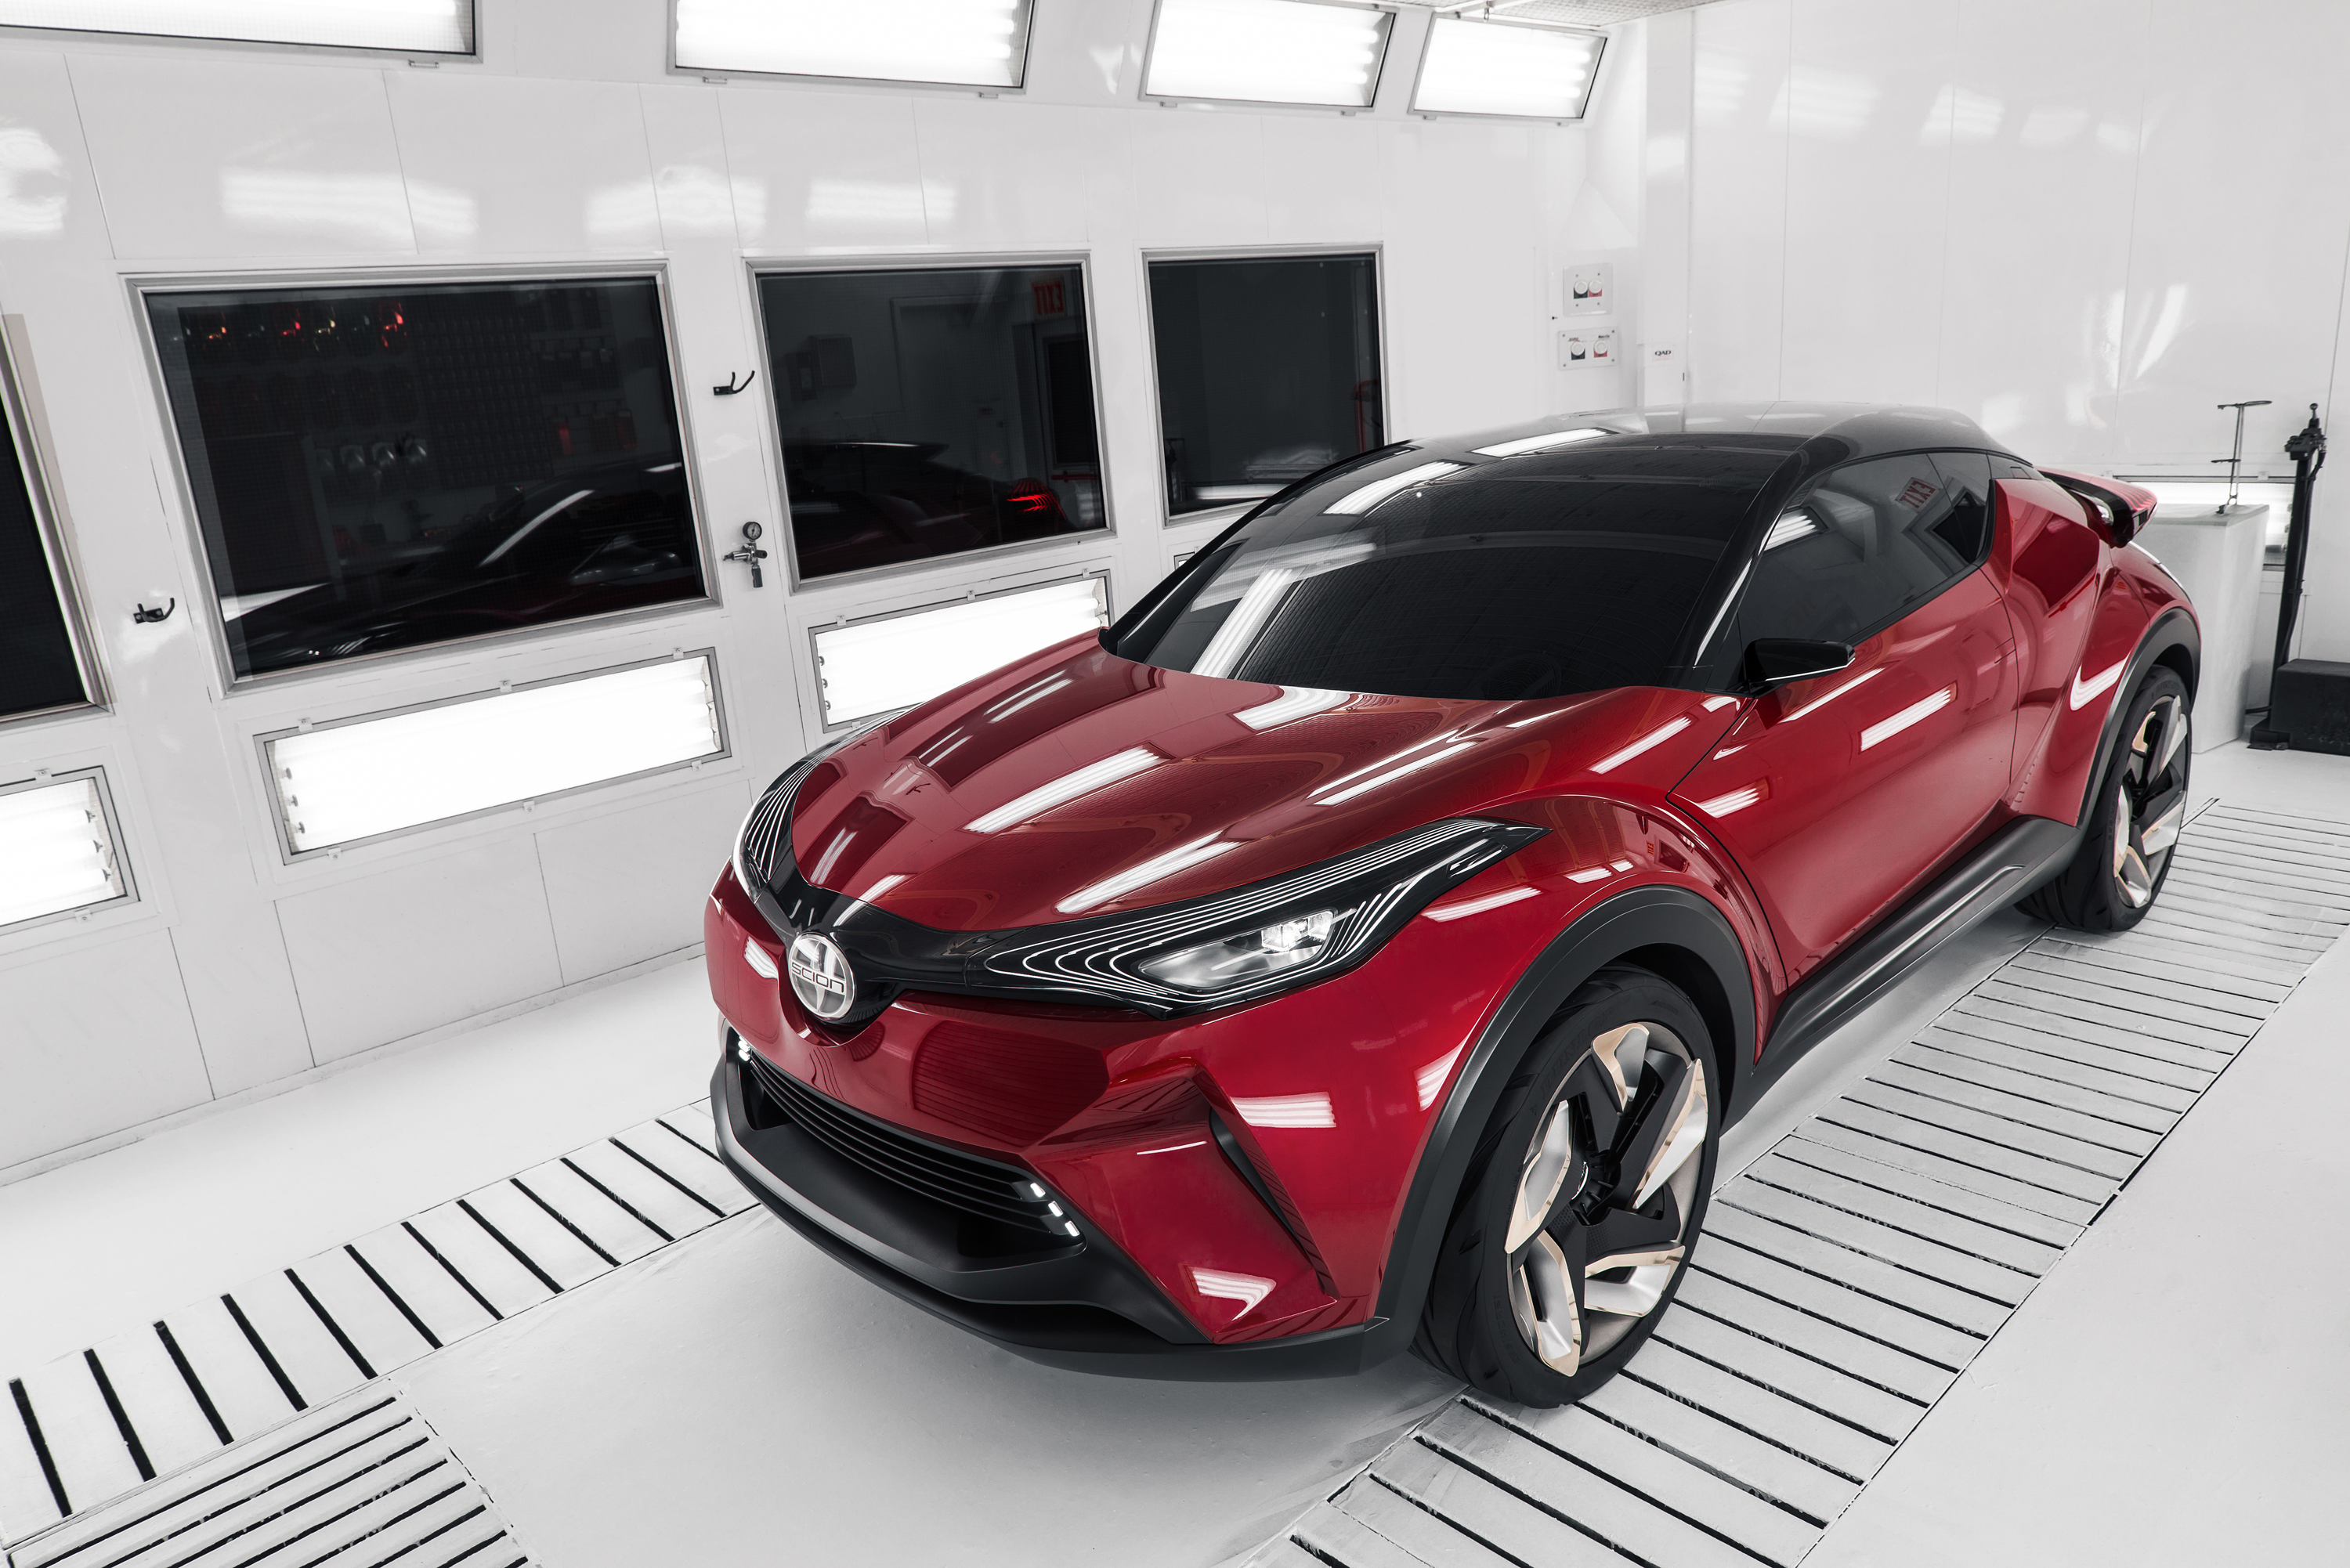 Scions Next Icon World Debut Of CHR Concept Car At Los Angeles - Next auto show